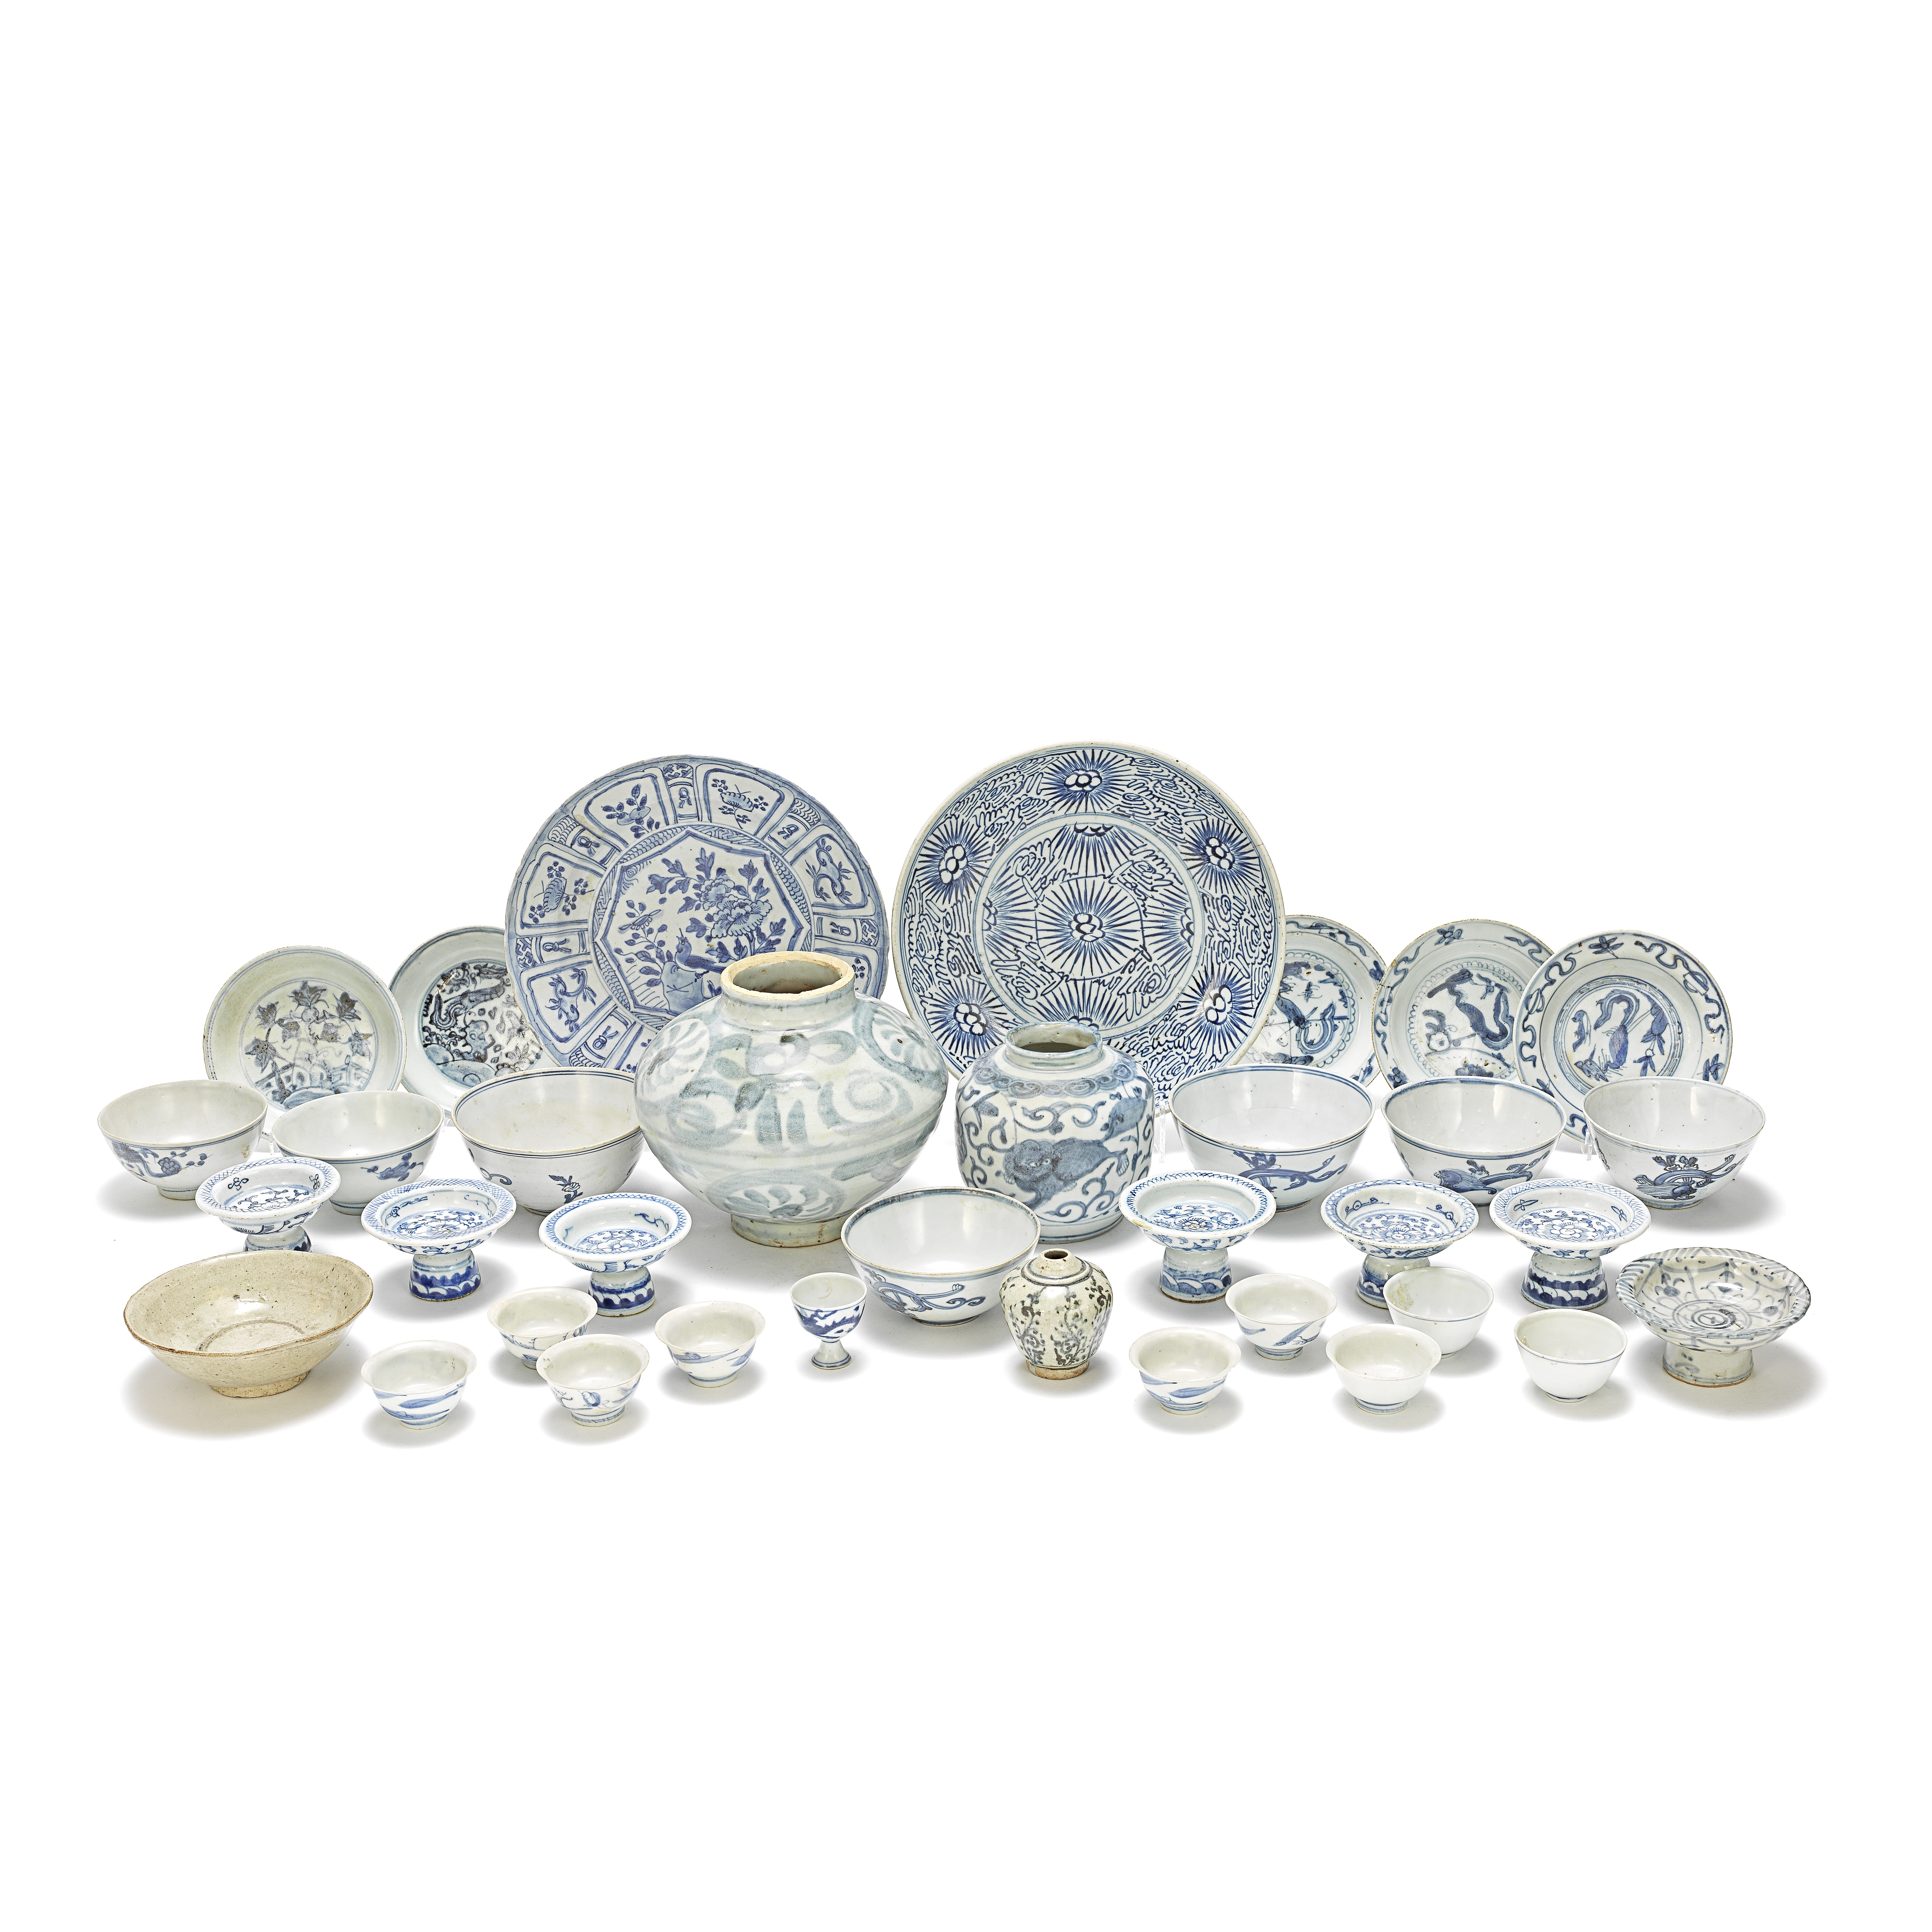 A KRAAK PORCELAIN DISH AND OTHER BLUE AND WHITE WARES INCLUDING SHIPWRECK AND PROVINCIAL PORCELAI...